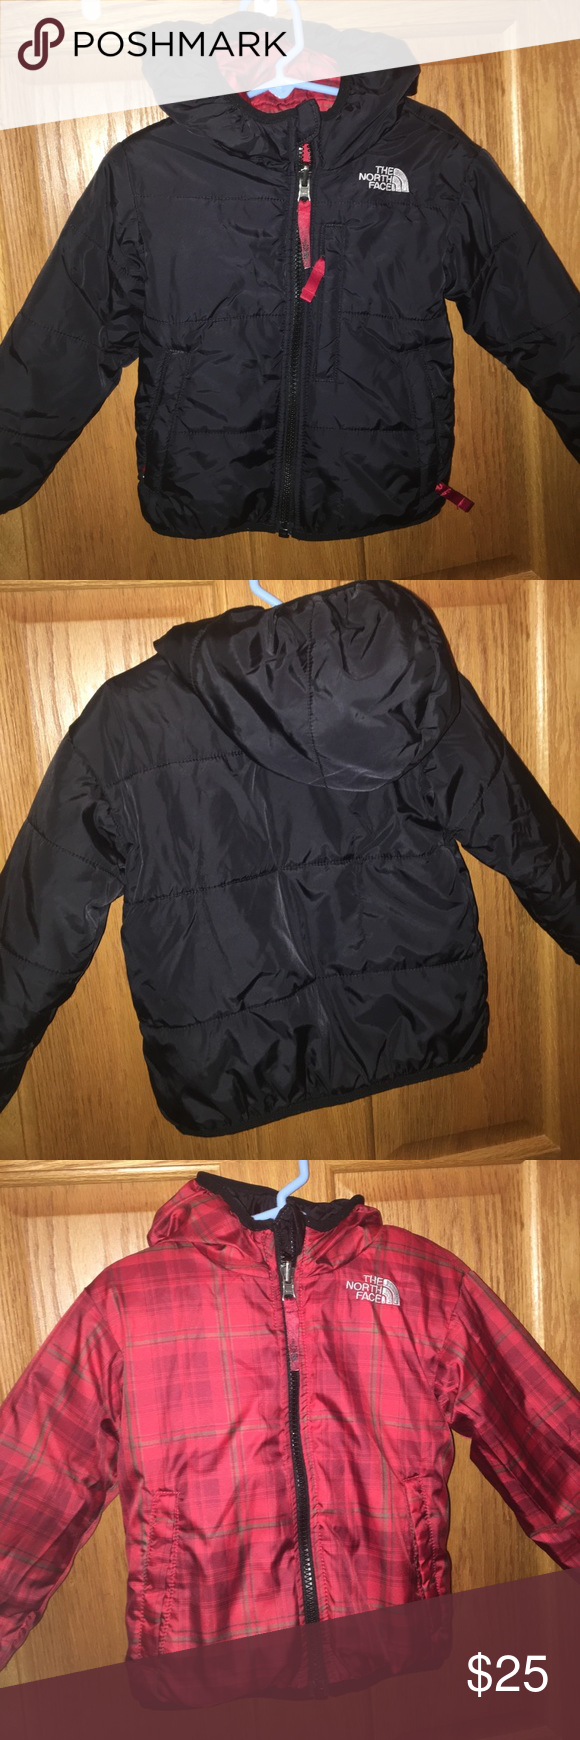 Like New Reversible North Face Puffer Jacket 2t North Face Puffer Jacket The North Face Jackets [ 1740 x 580 Pixel ]